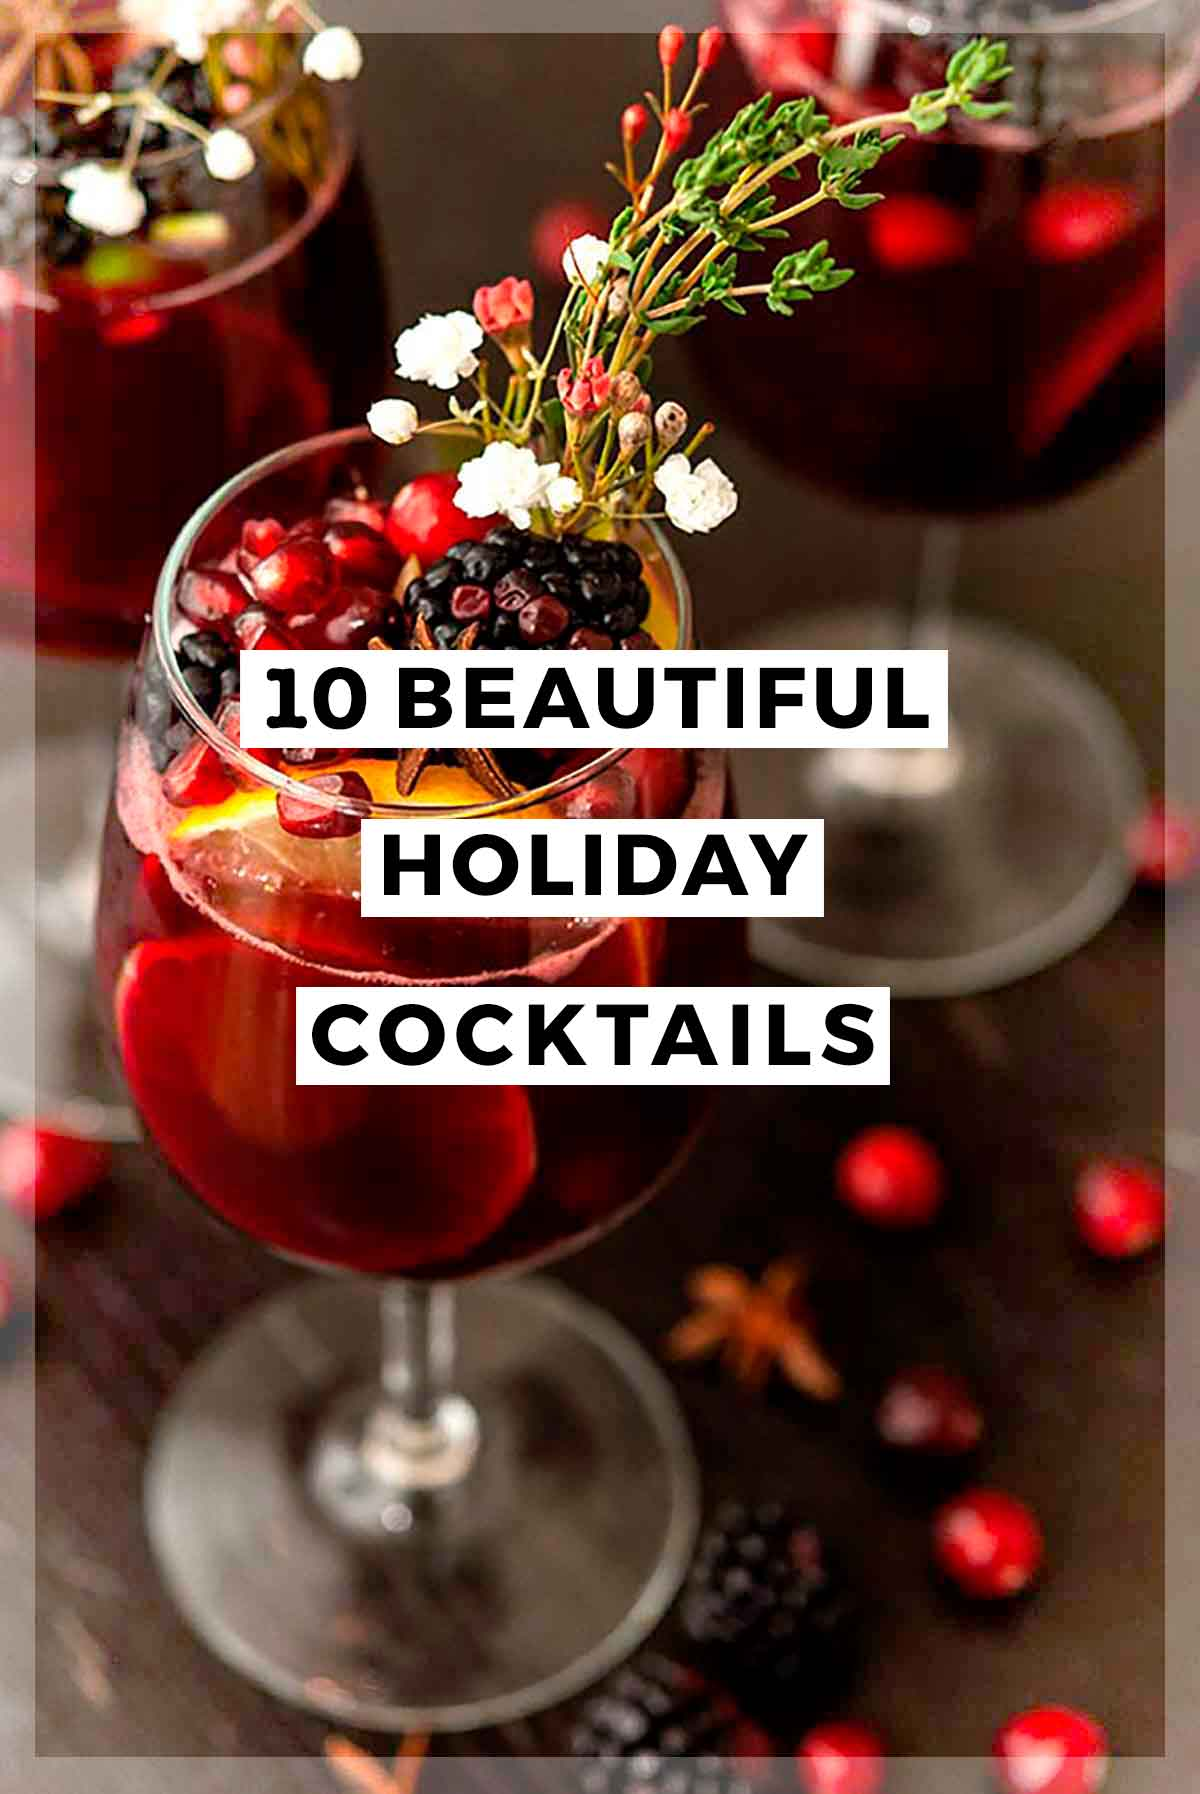 """A flamboyantly garnished cocktail with a title that says """"10 Beautiful Holiday Cocktails."""""""